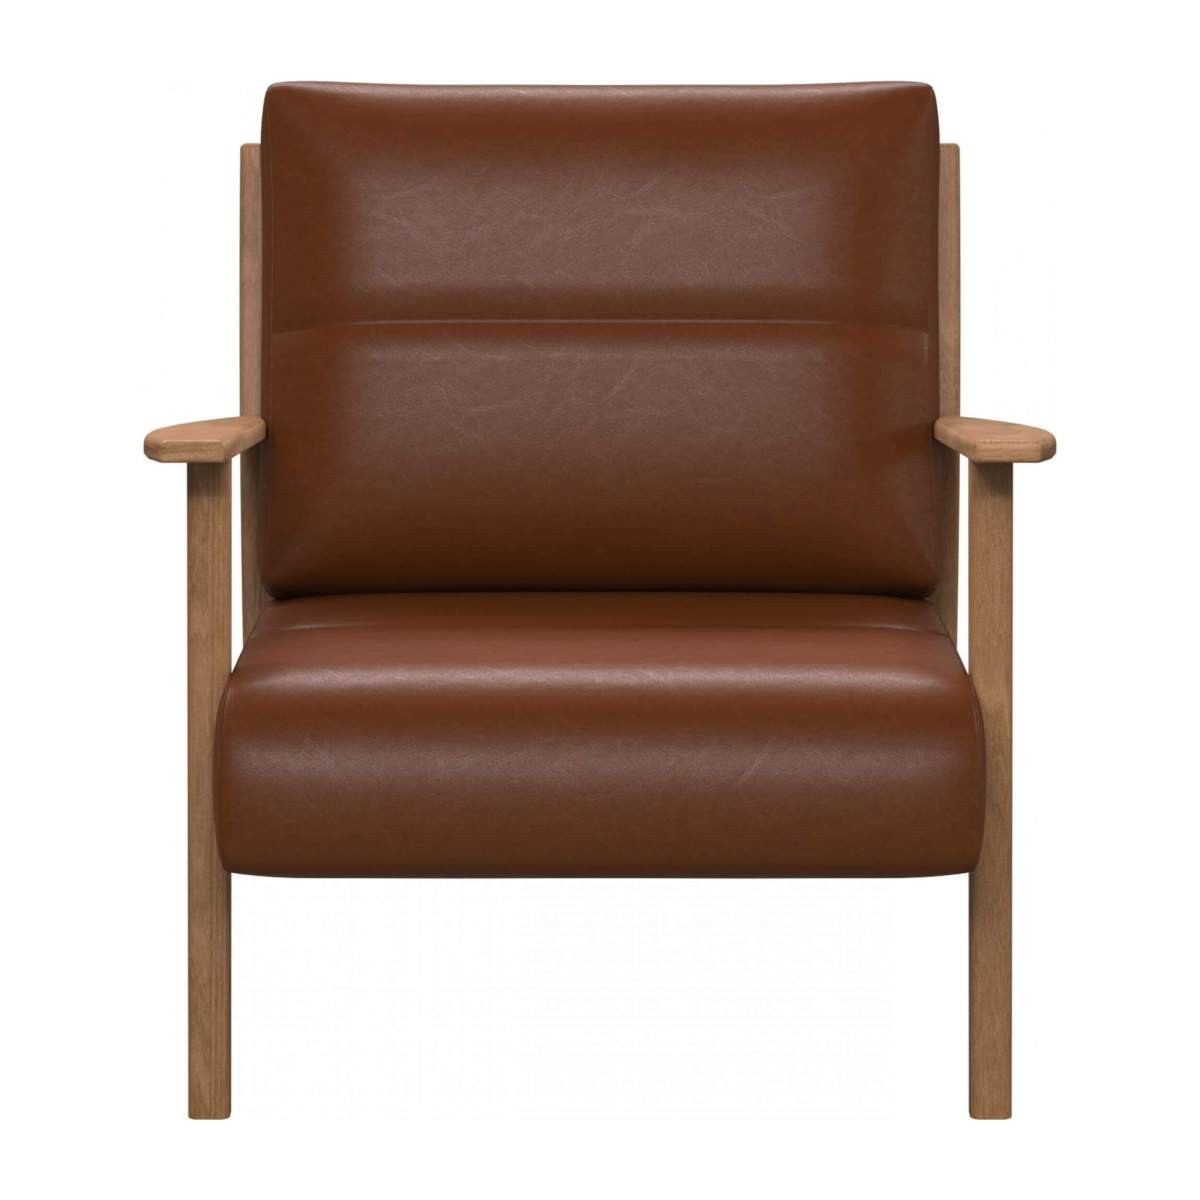 Armchair in Vintage aniline leather, old chestnut n°1